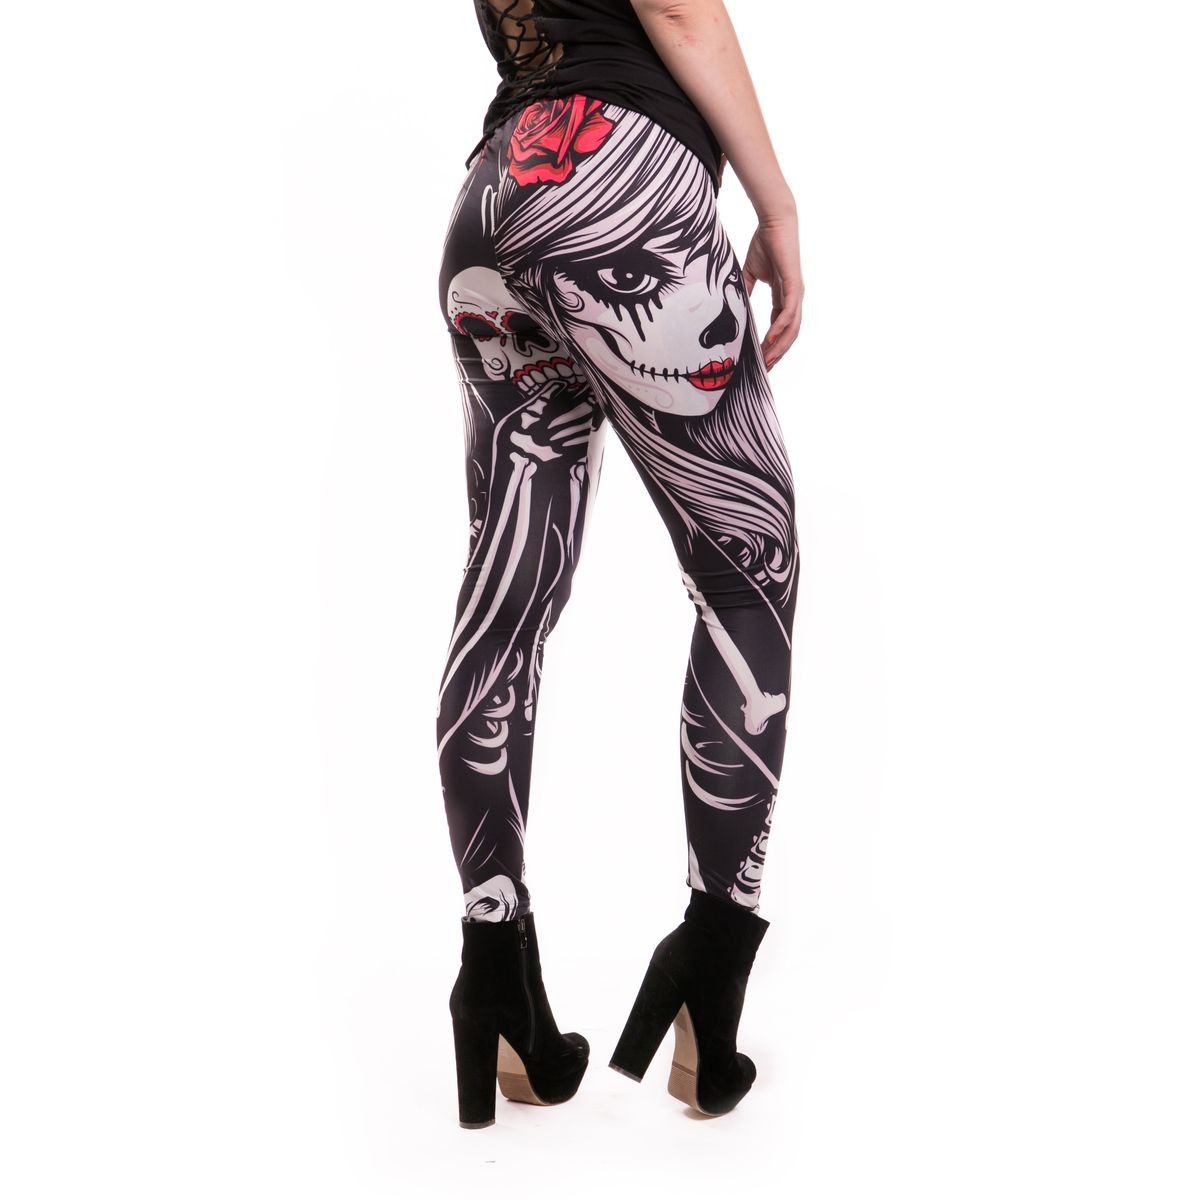 VIXXSIN - CROW GIRL LEGGINGS LADIES BLACK